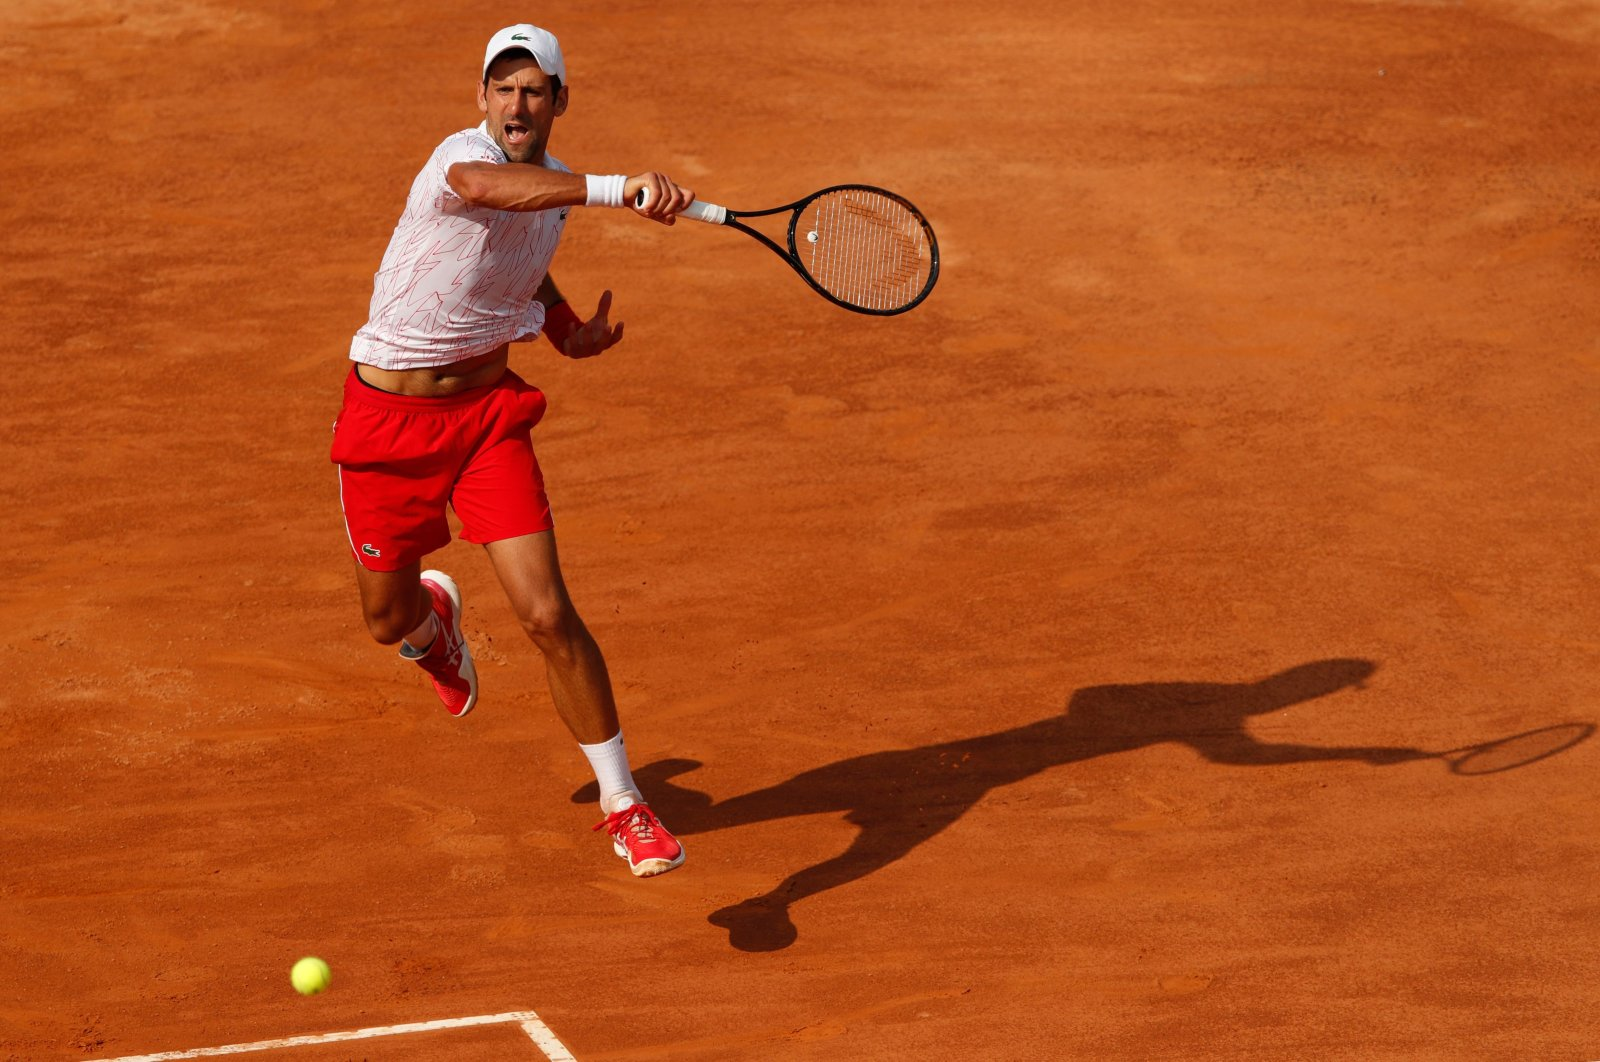 Novak Djokovic plays a forehand to Casper Ruud during their semifinal match at the Italian Open, in Rome, Italy, Sept. 20, 2020. (AFP Photo)